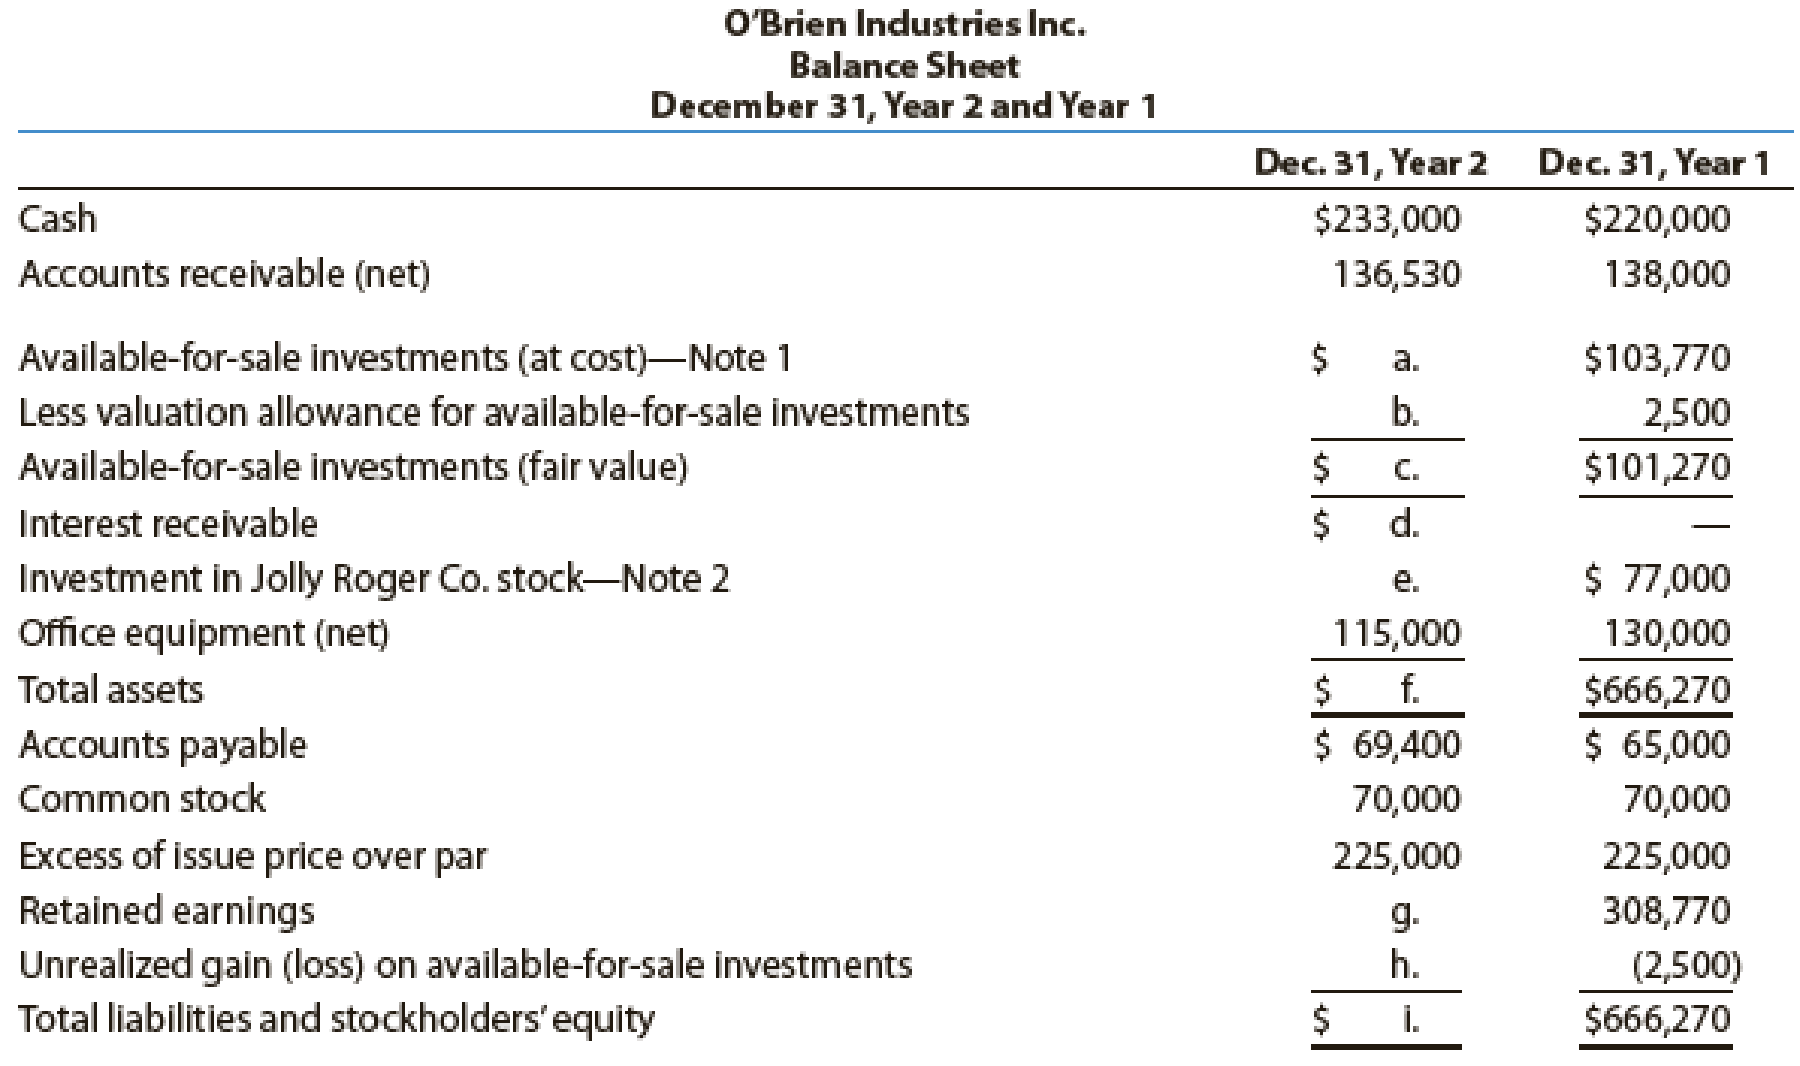 Chapter 15, Problem 4PA, OBrien Industries Inc. is a book publisher. The comparative unclassified balance sheets for December , example  1